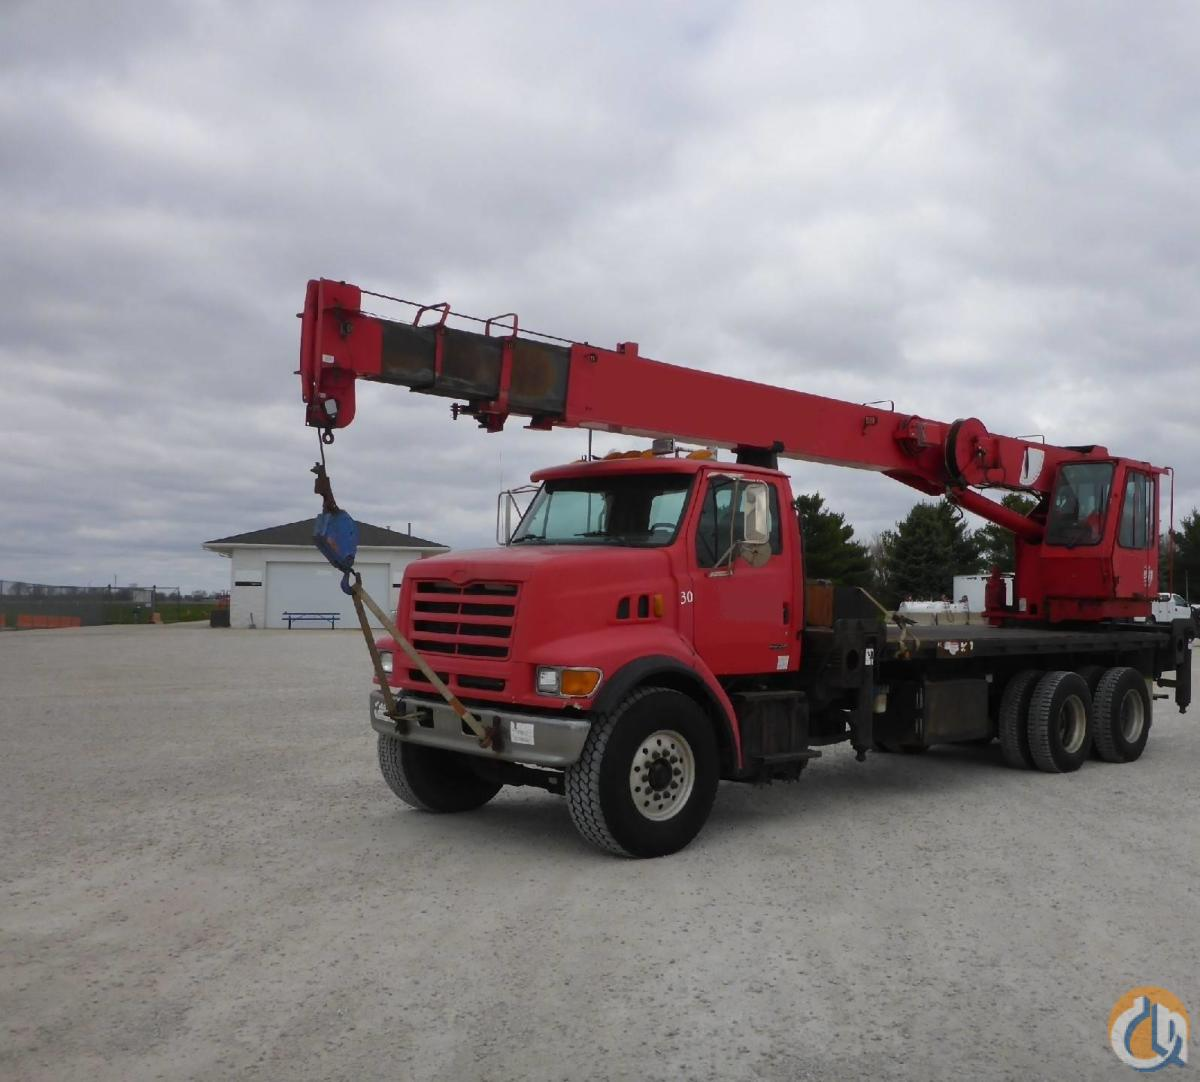 2000 NATIONAL 1300 Crane for Sale in Lewisville Texas on CraneNetwork.com